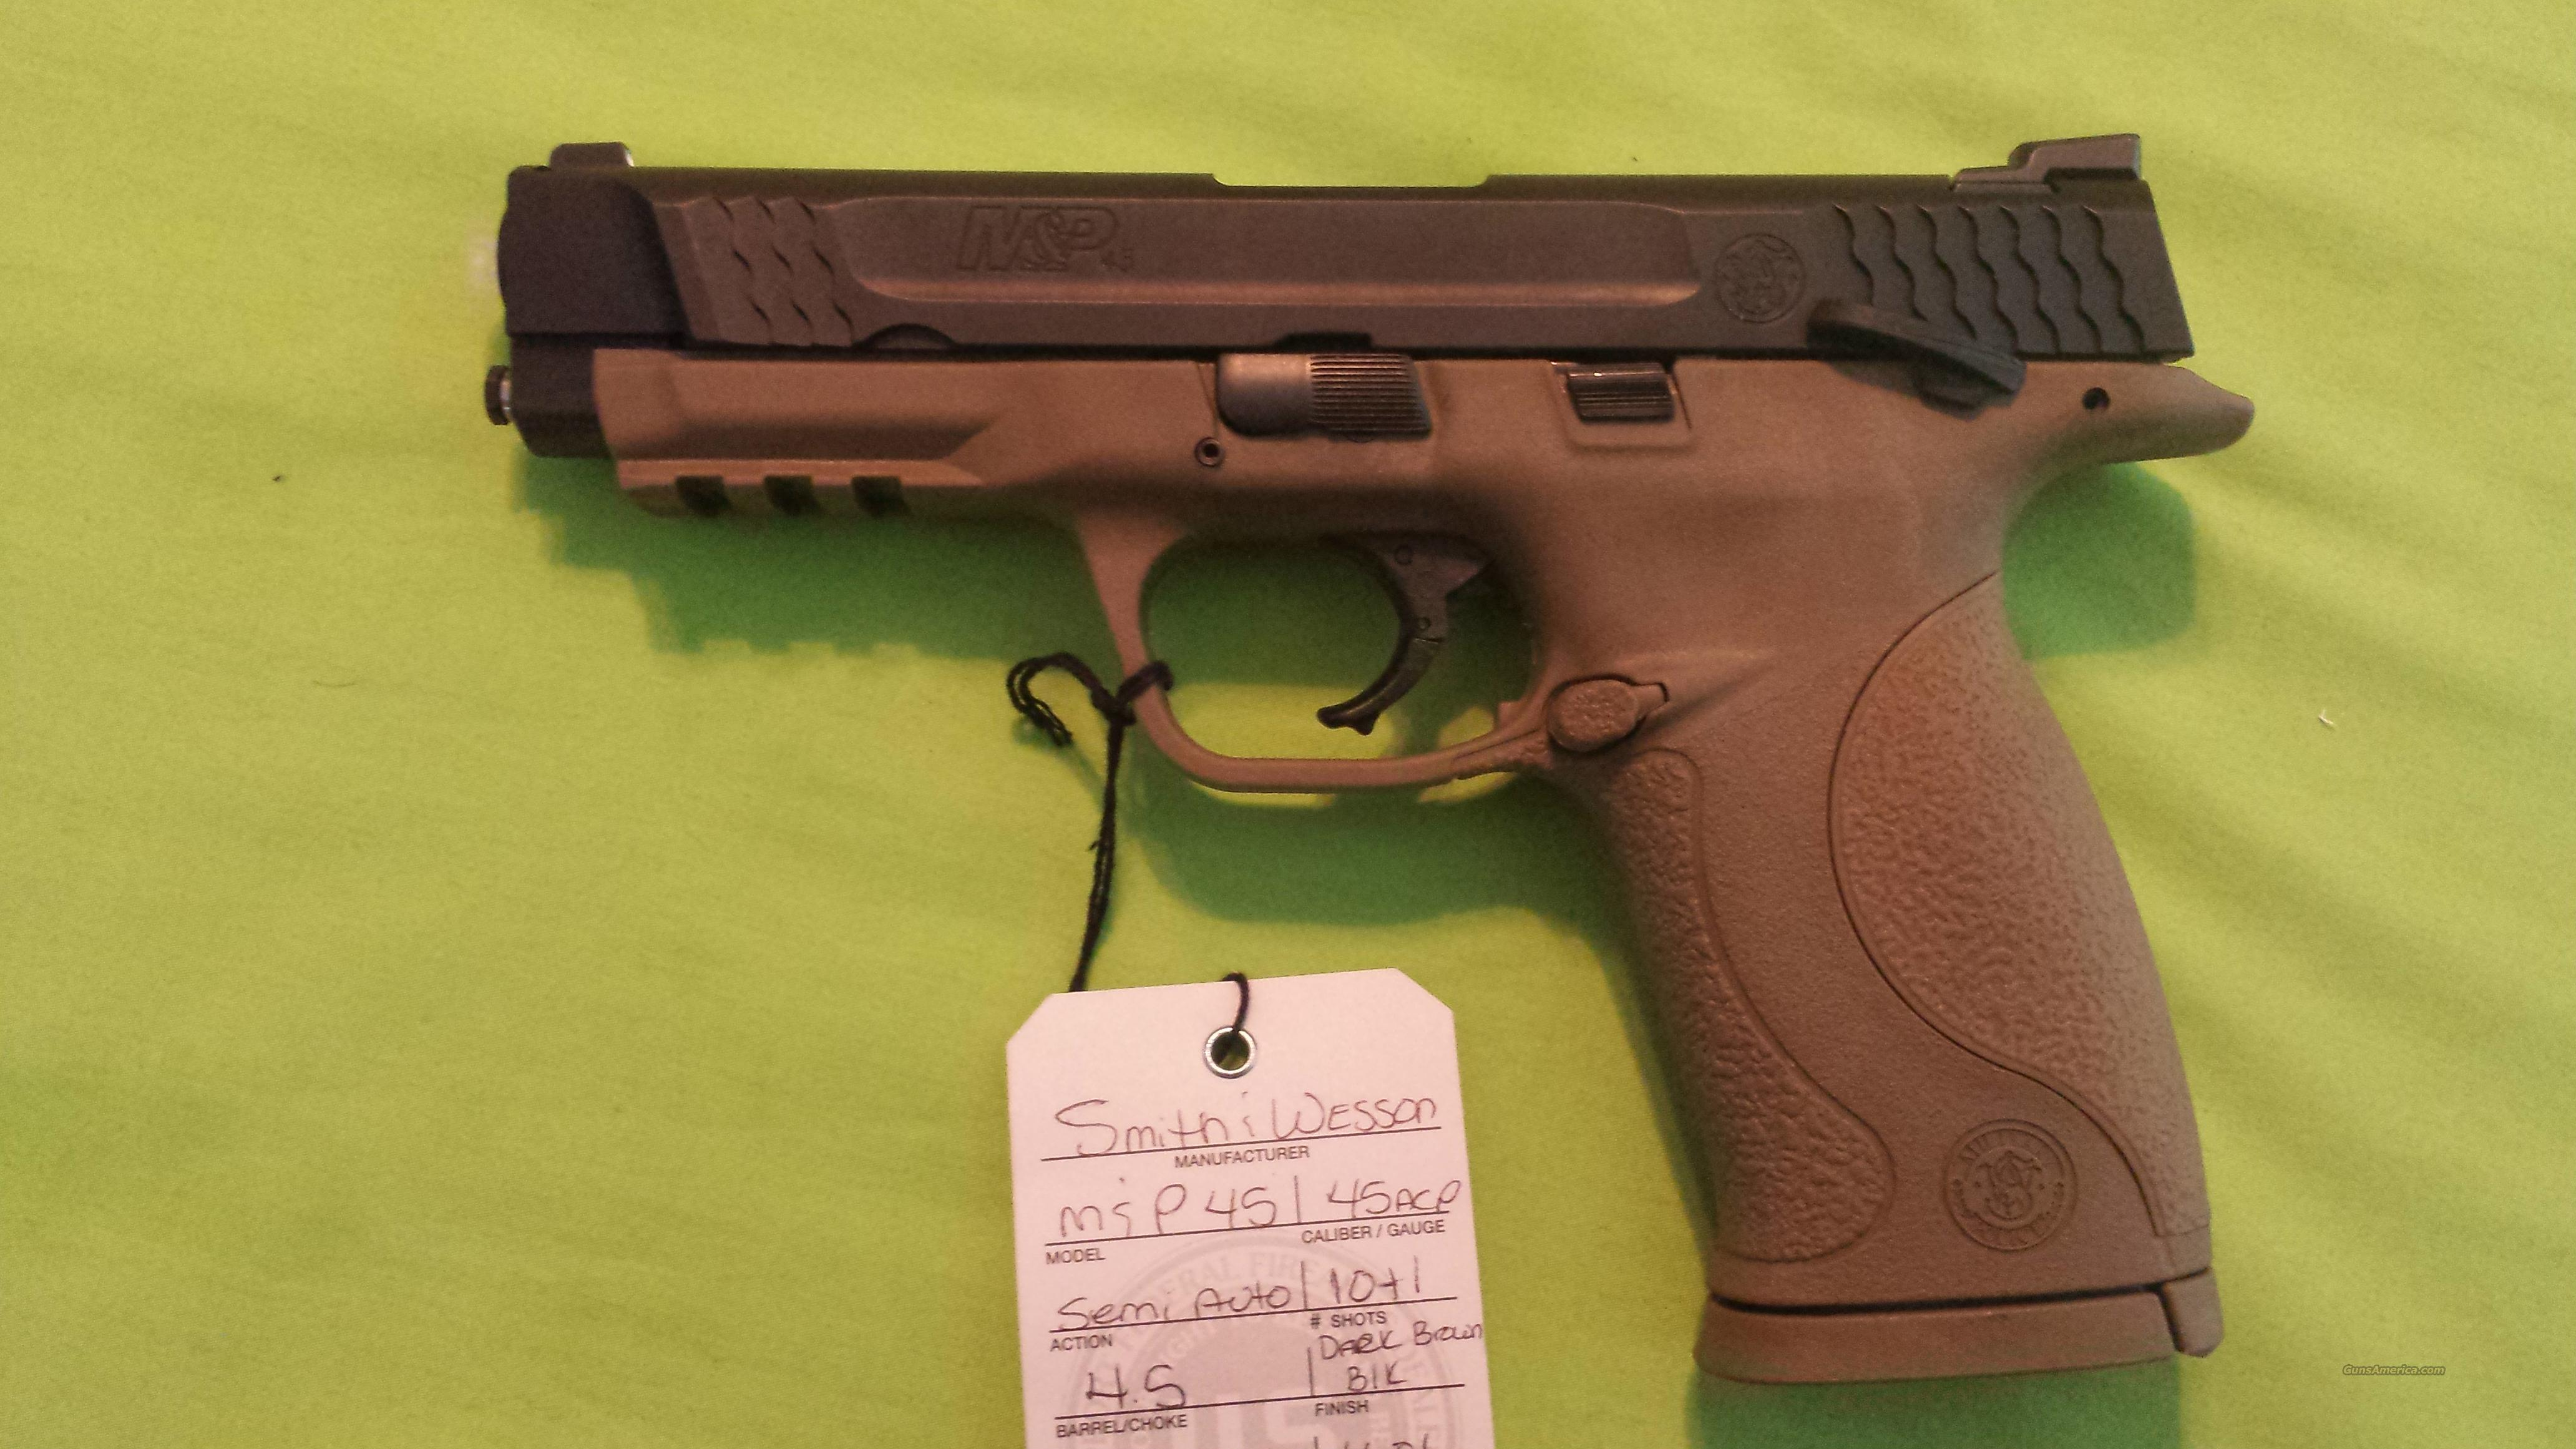 "S&W M&P 45 M&P45 FDE DARK BROWN 45 ACP 4.5"" 10RD  Guns > Pistols > Smith & Wesson Pistols - Autos > Polymer Frame"